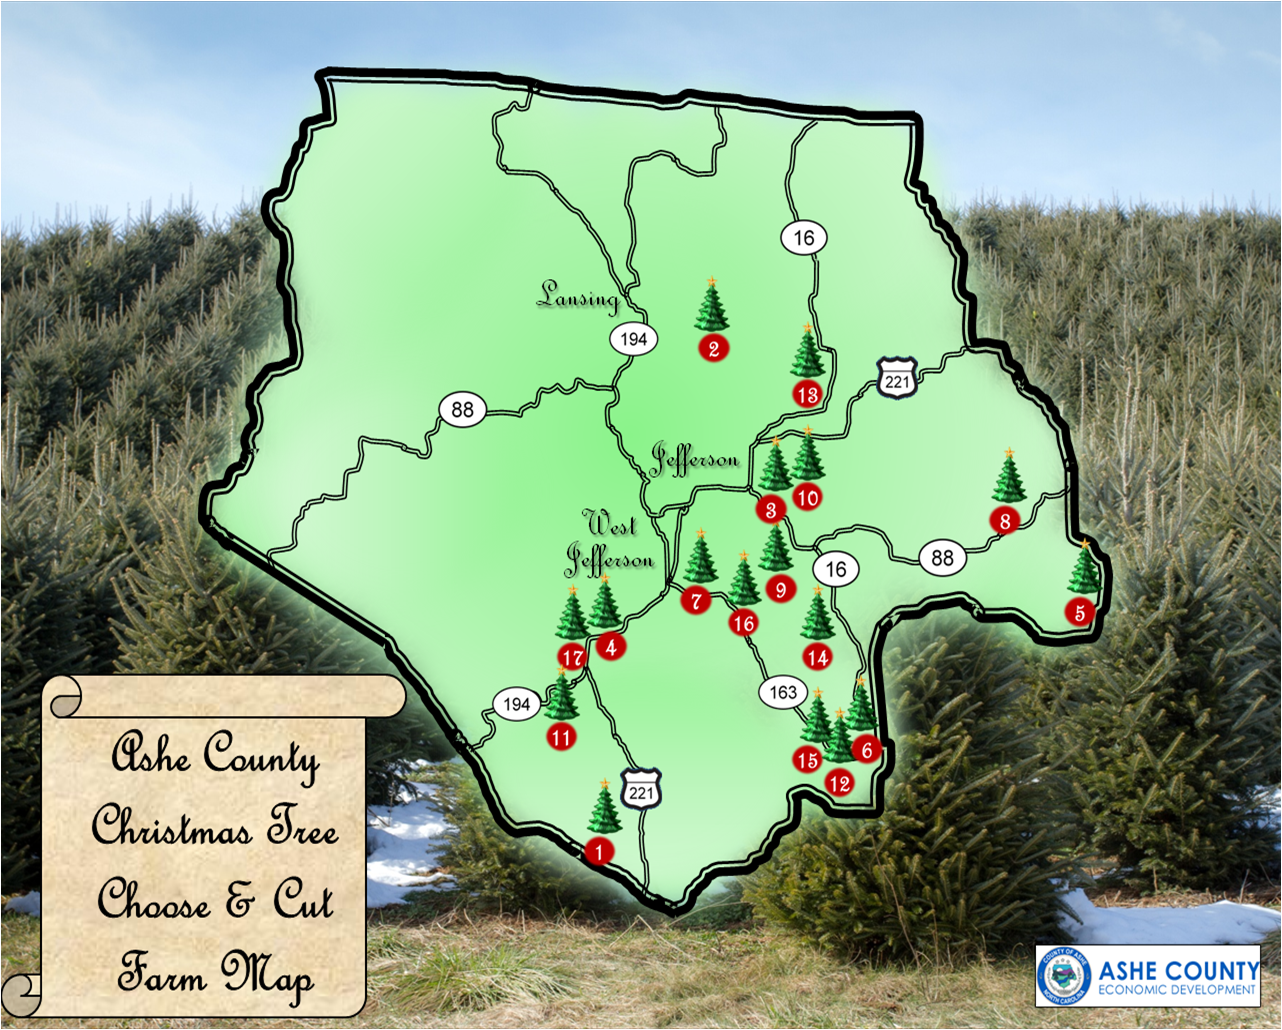 Ashe County Christmas Trees